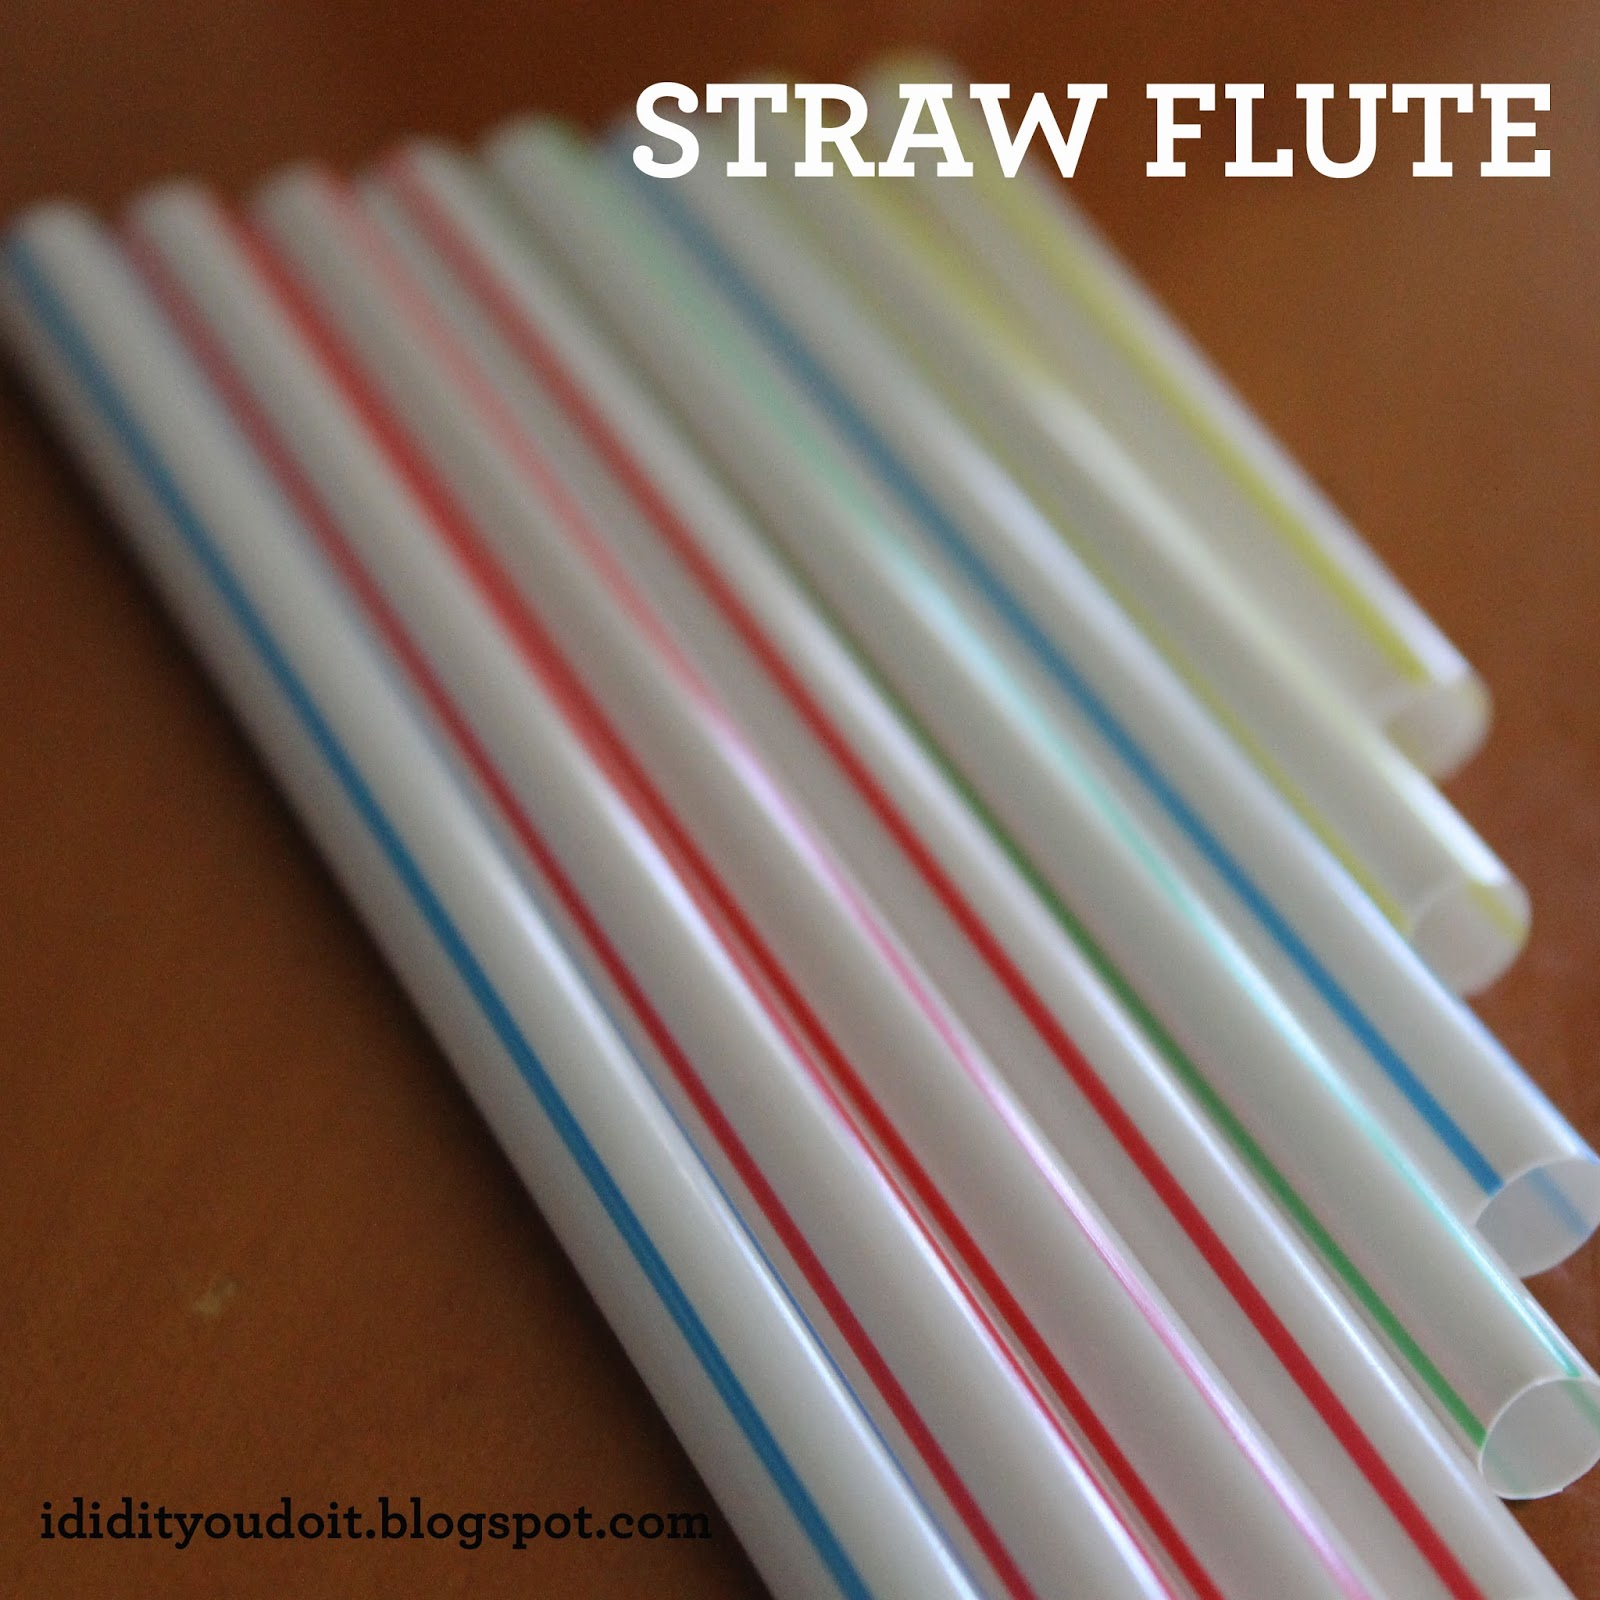 I Did It - You Do It: Straw Flute